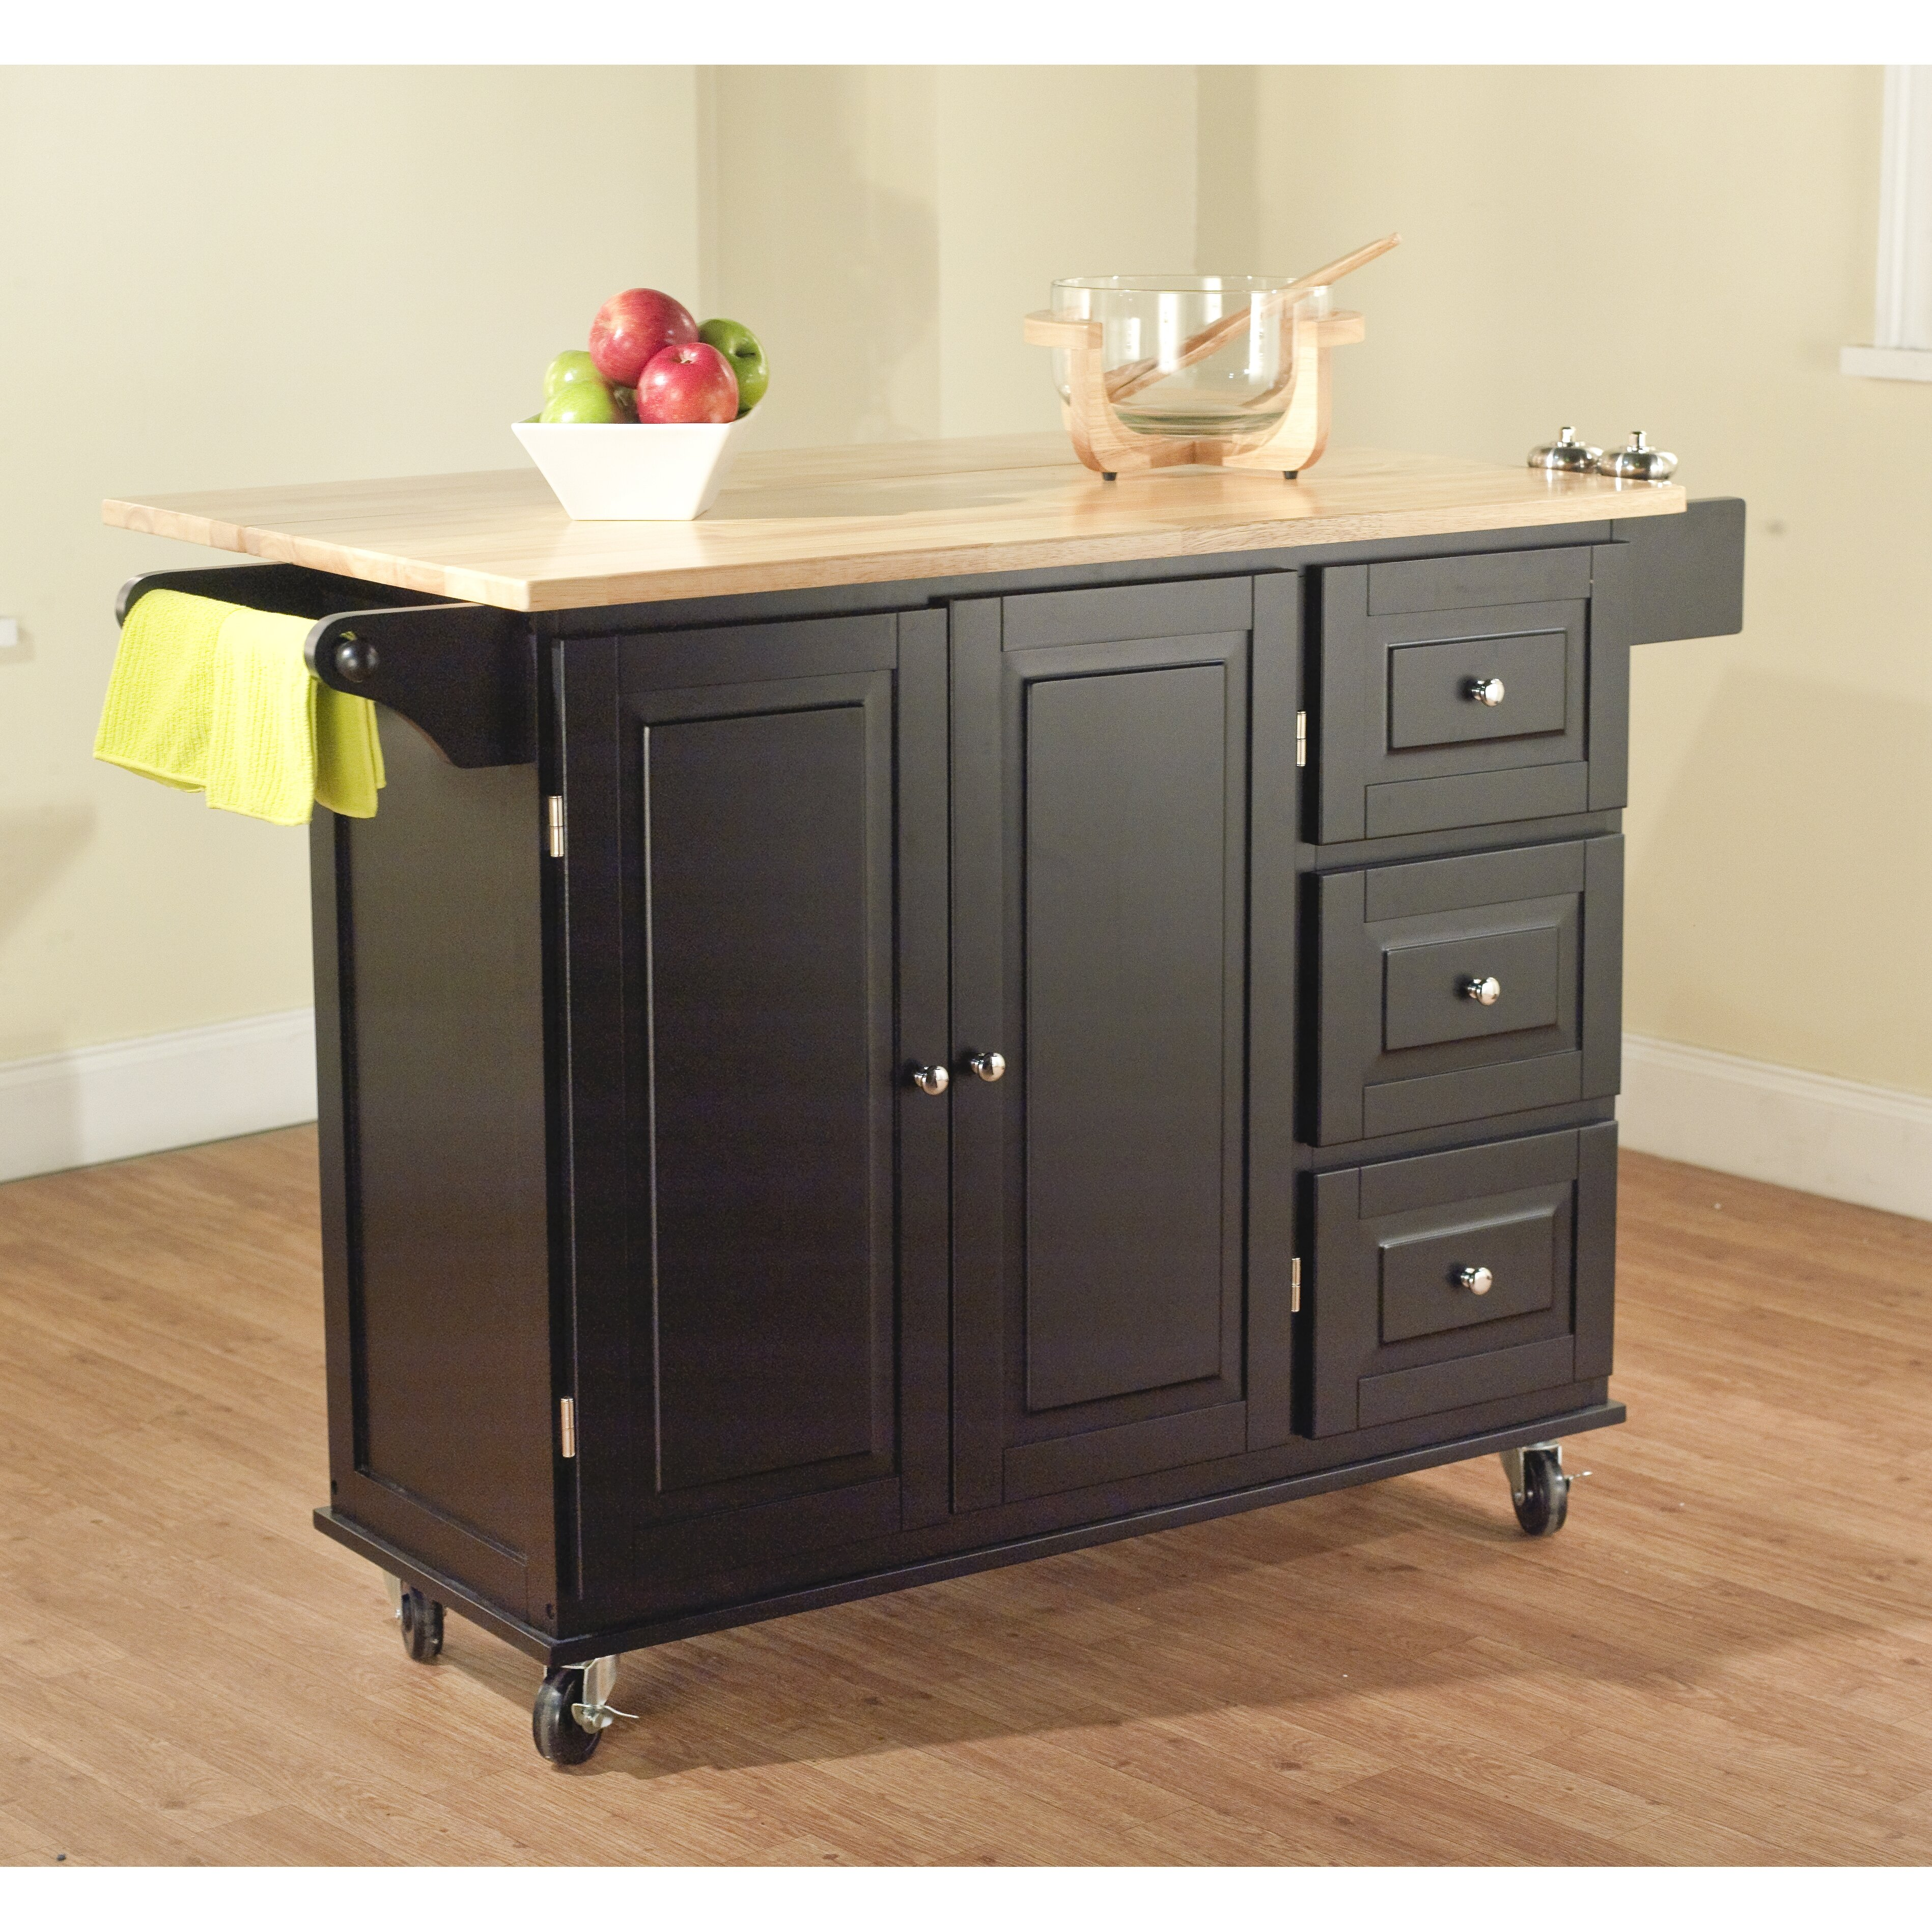 Kitchen Islands With Storage: Darby Home Co Arpdale Kitchen Island With Wood Top